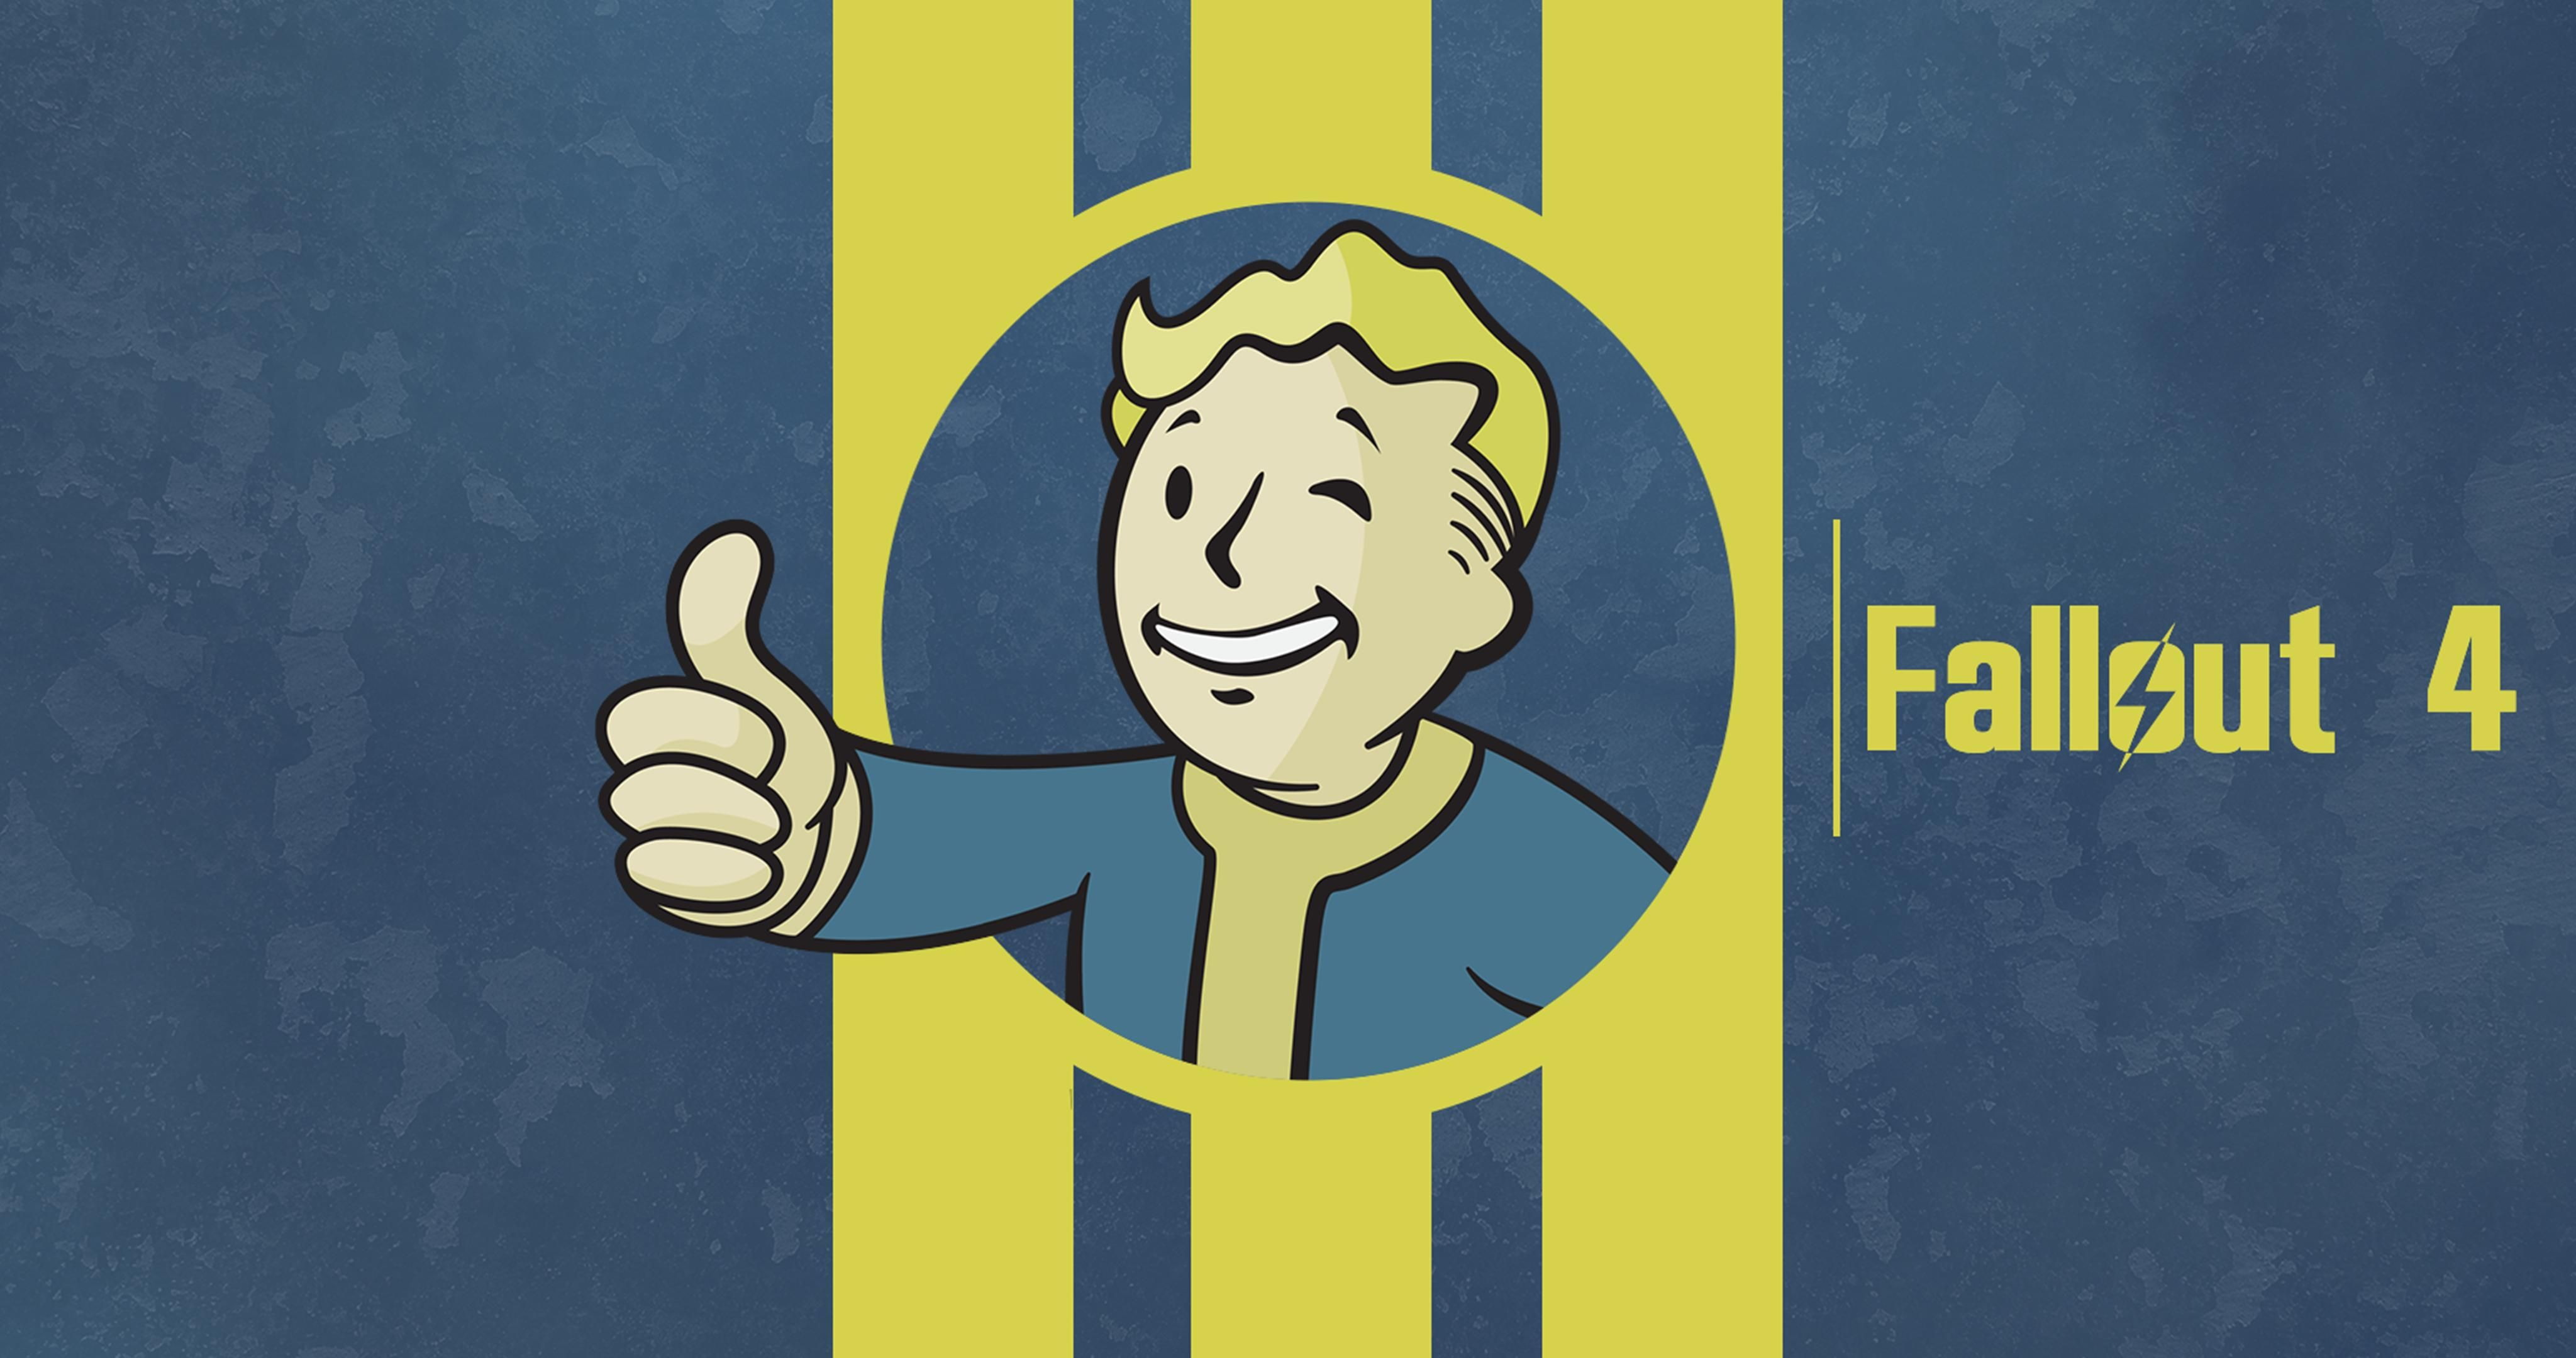 Fallout 4 Vault Boy Wallpaper Boys Wallpaper Fallout 4 Vault